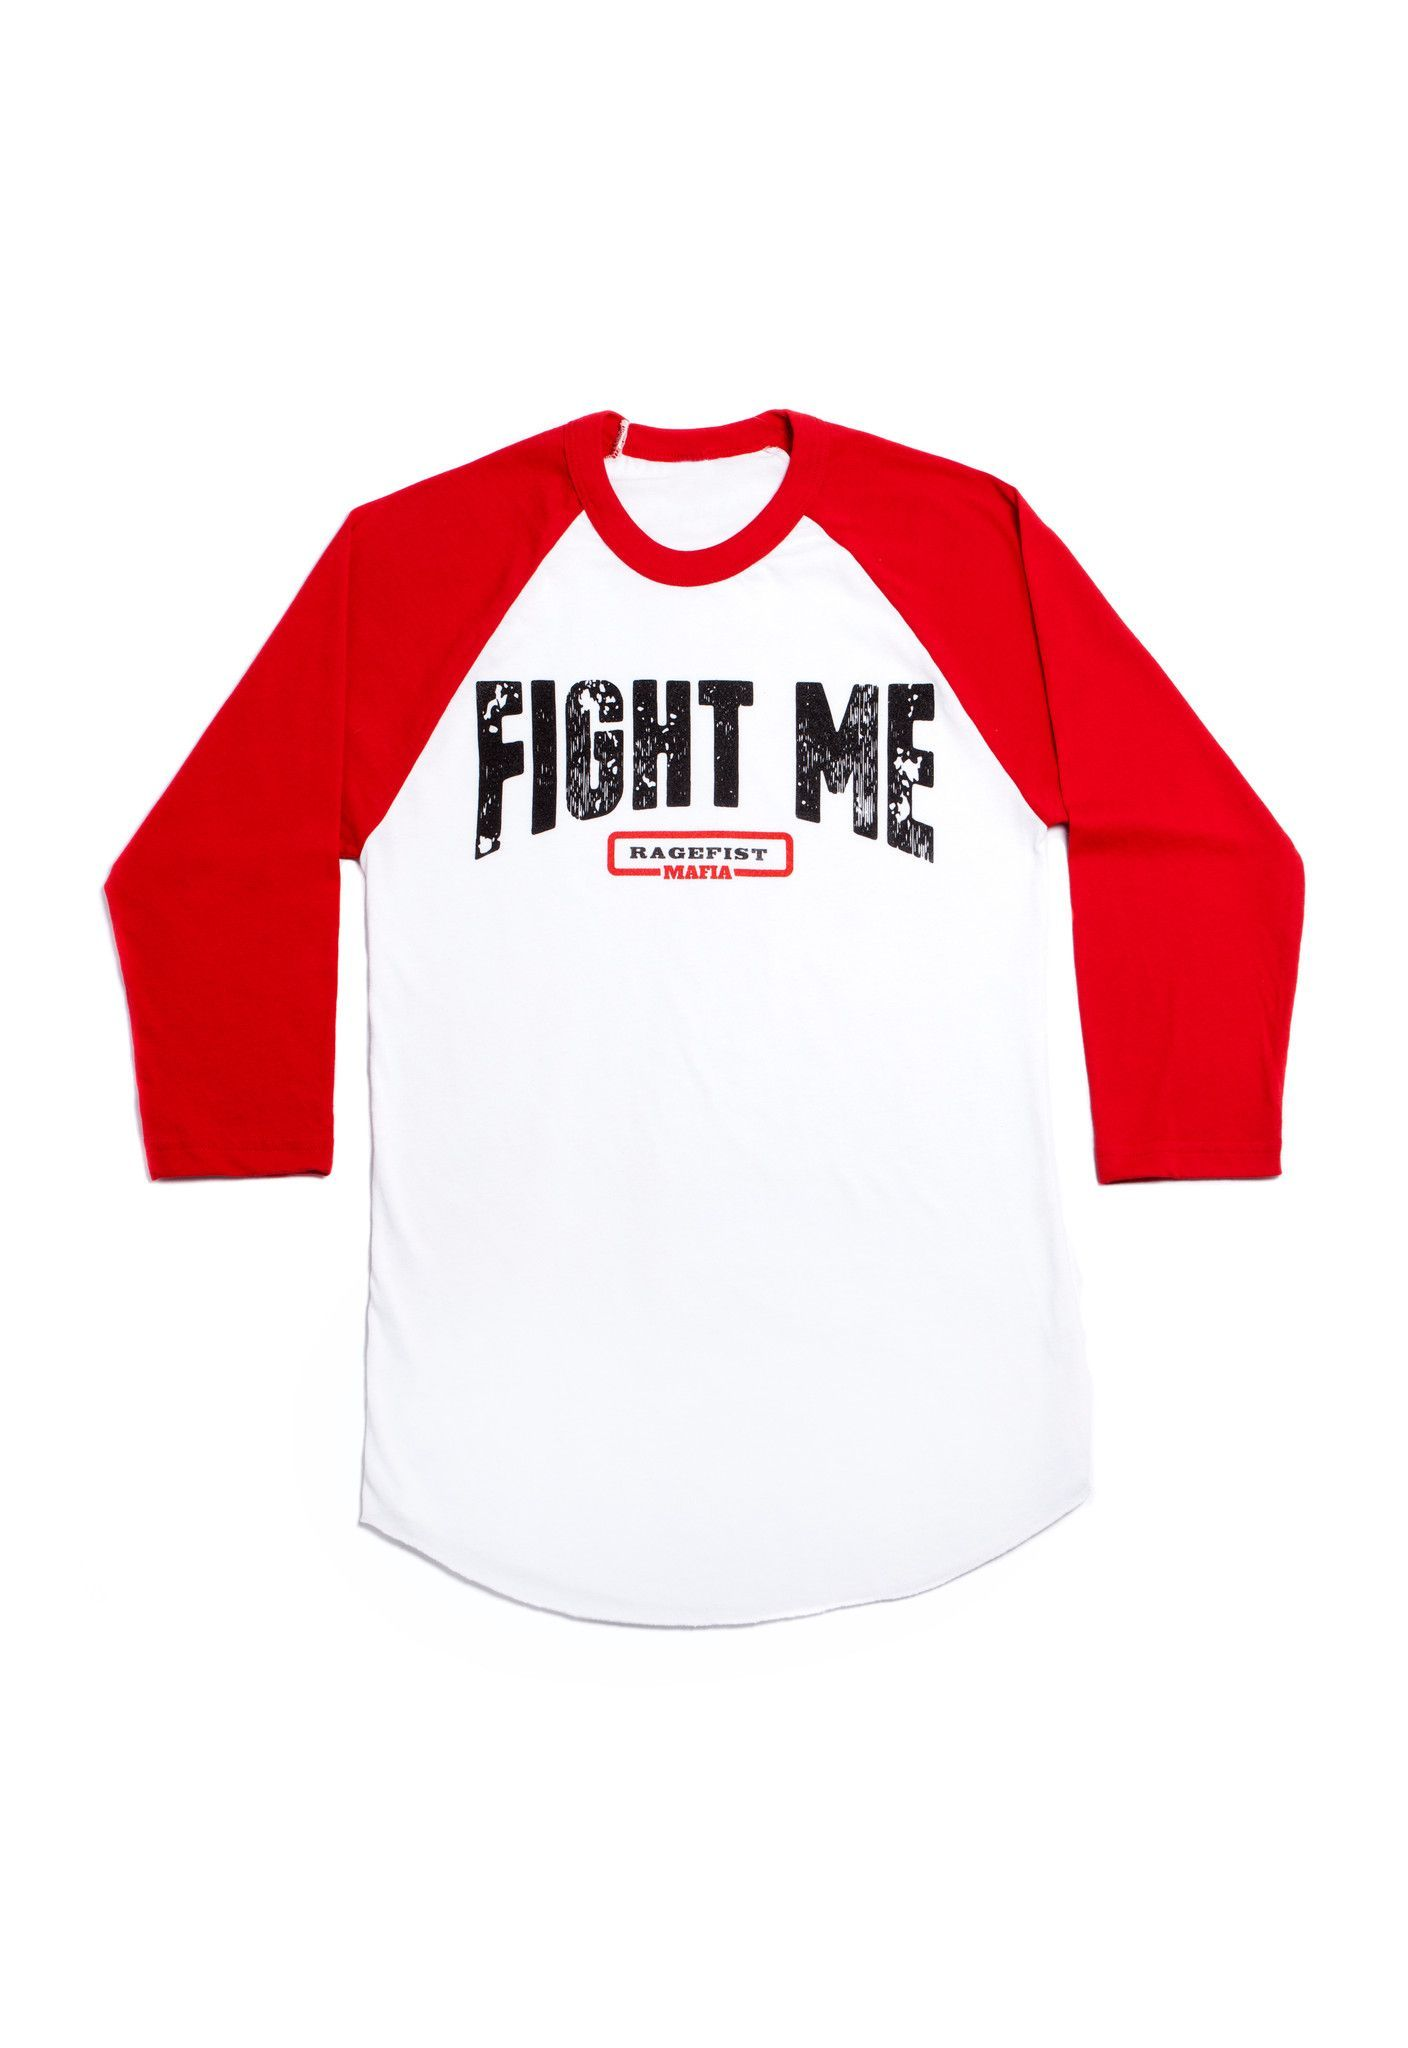 FIGHT ME RAGEFIST MAFIA 3/4 Sleeve Red & White Shirt | FIGHT ME ...